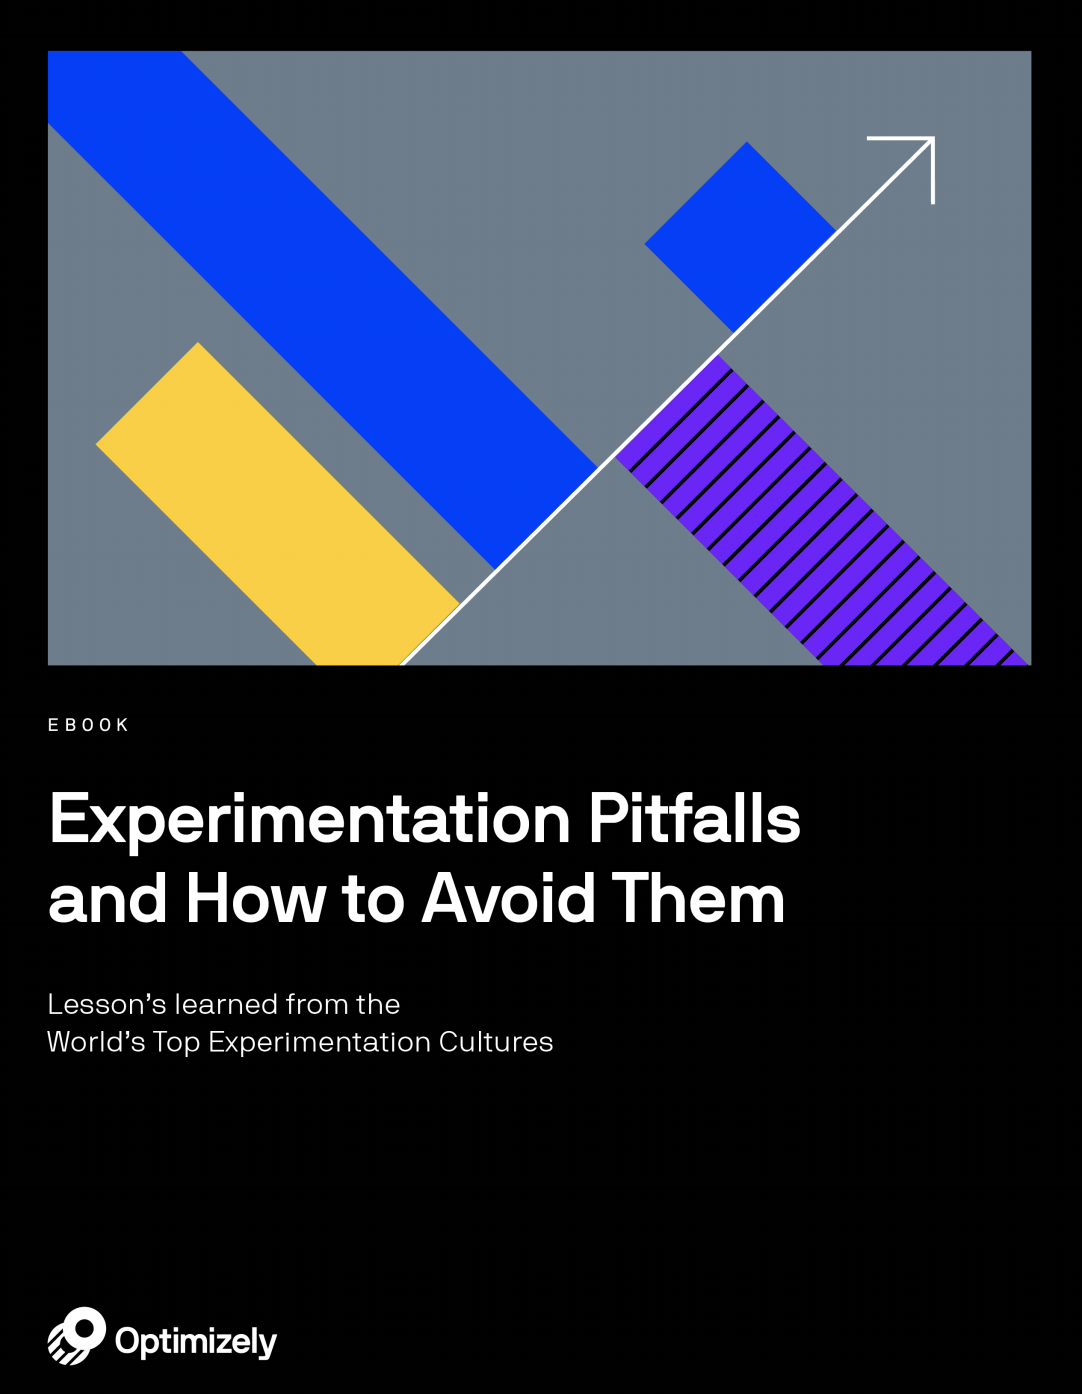 5 Product Experimentation Pitfalls & How to Avoid Them